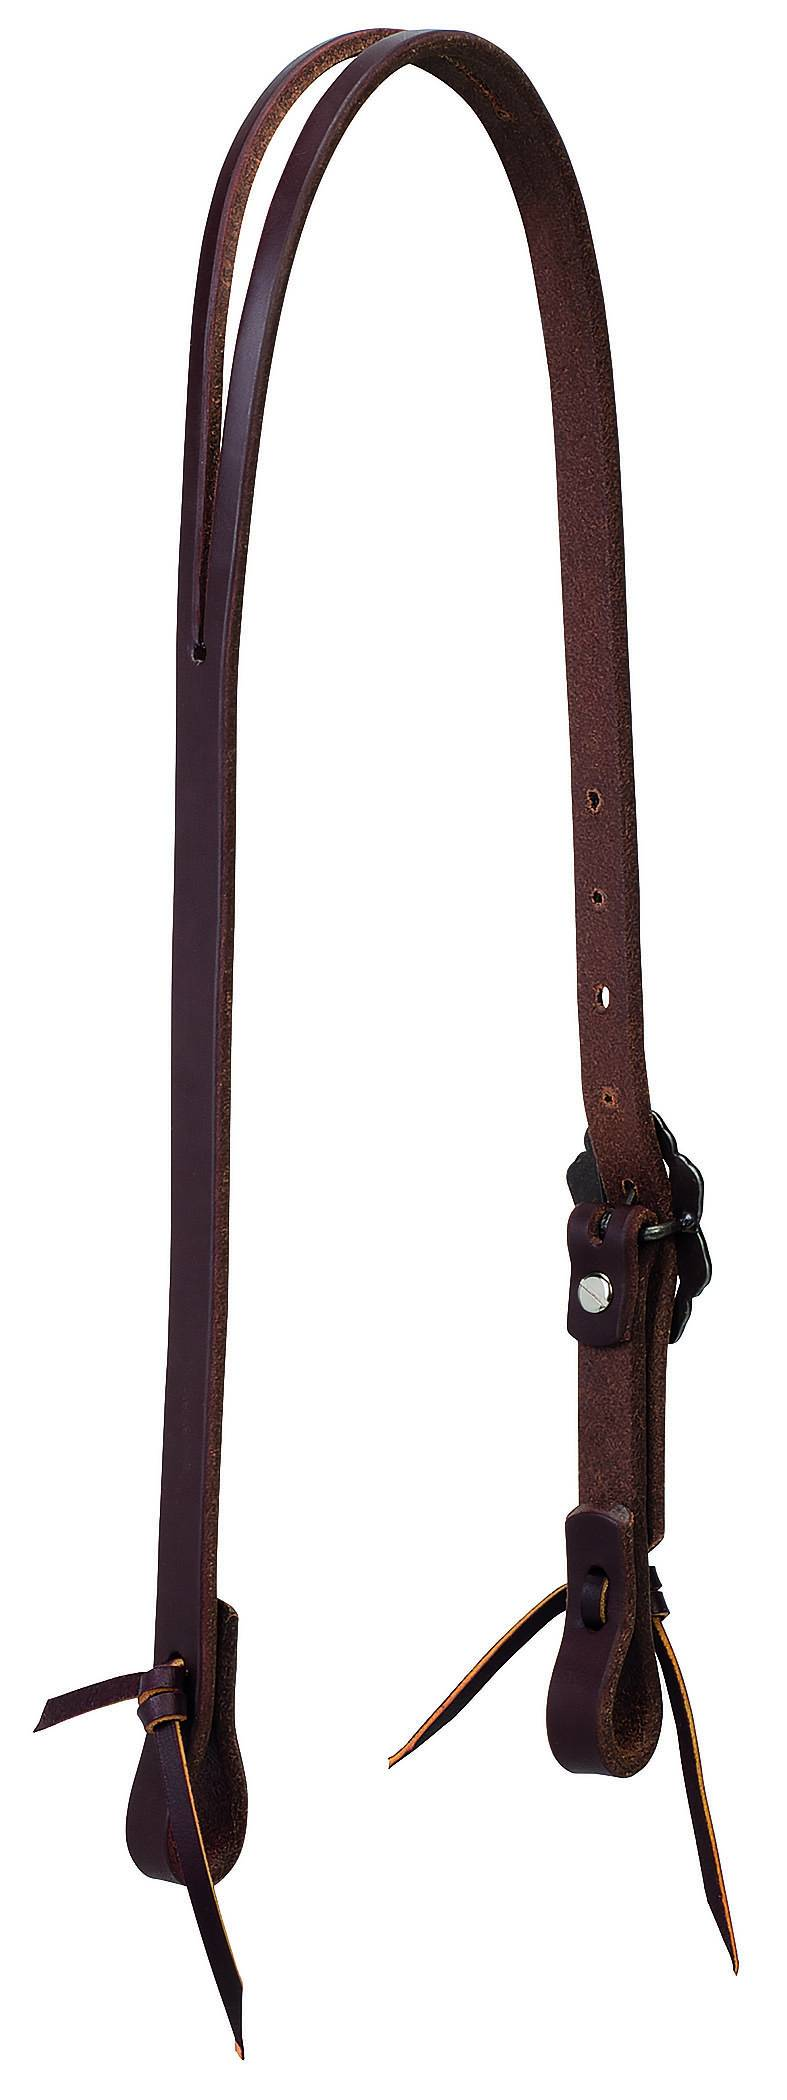 Weaver Working Tack Slit Ear Headstall - Buffed Brown Hardware